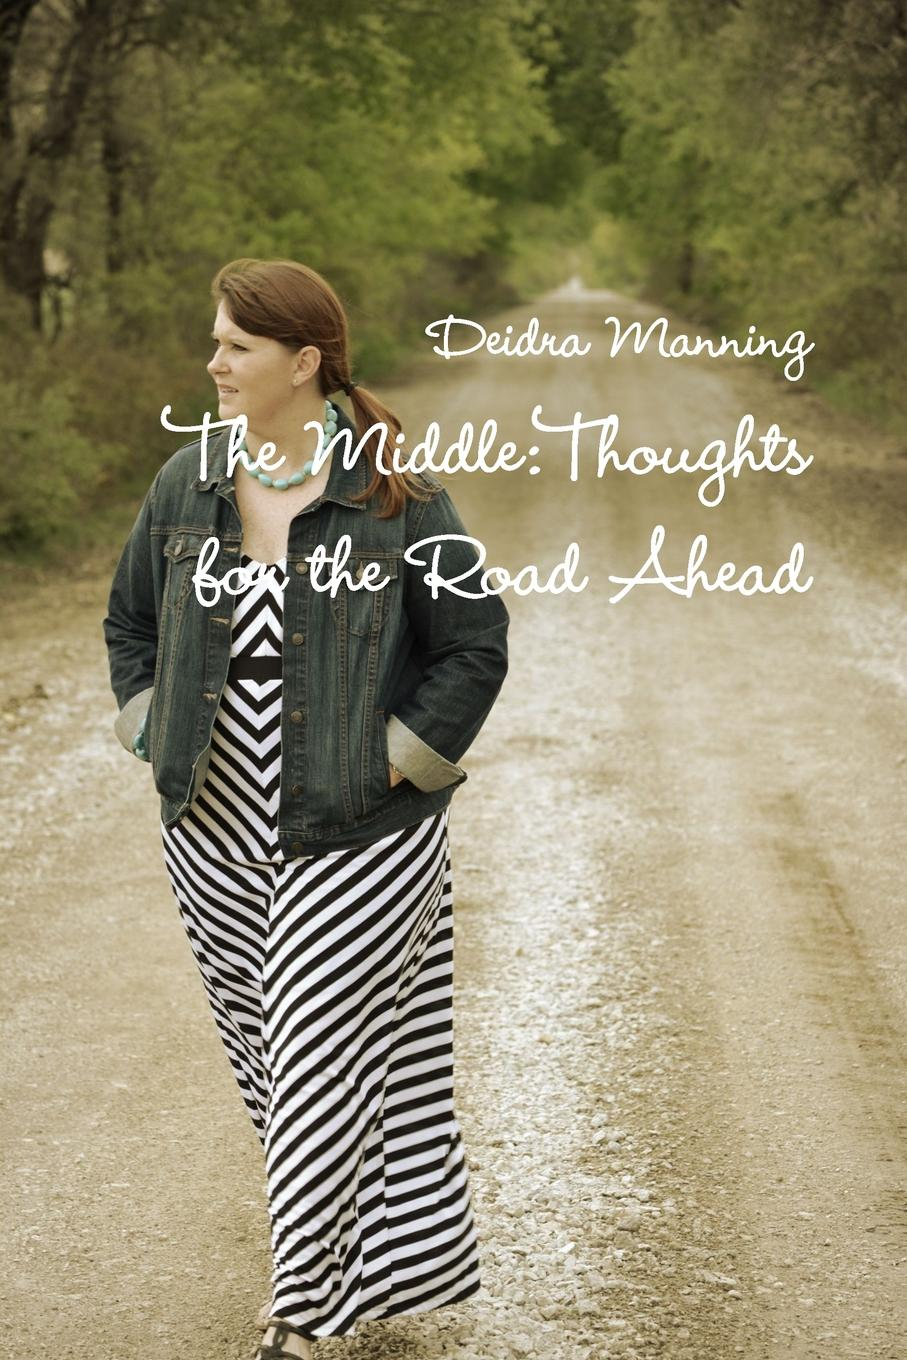 Deidra Manning The Middle. Thoughts for the Road Ahead цена 2017